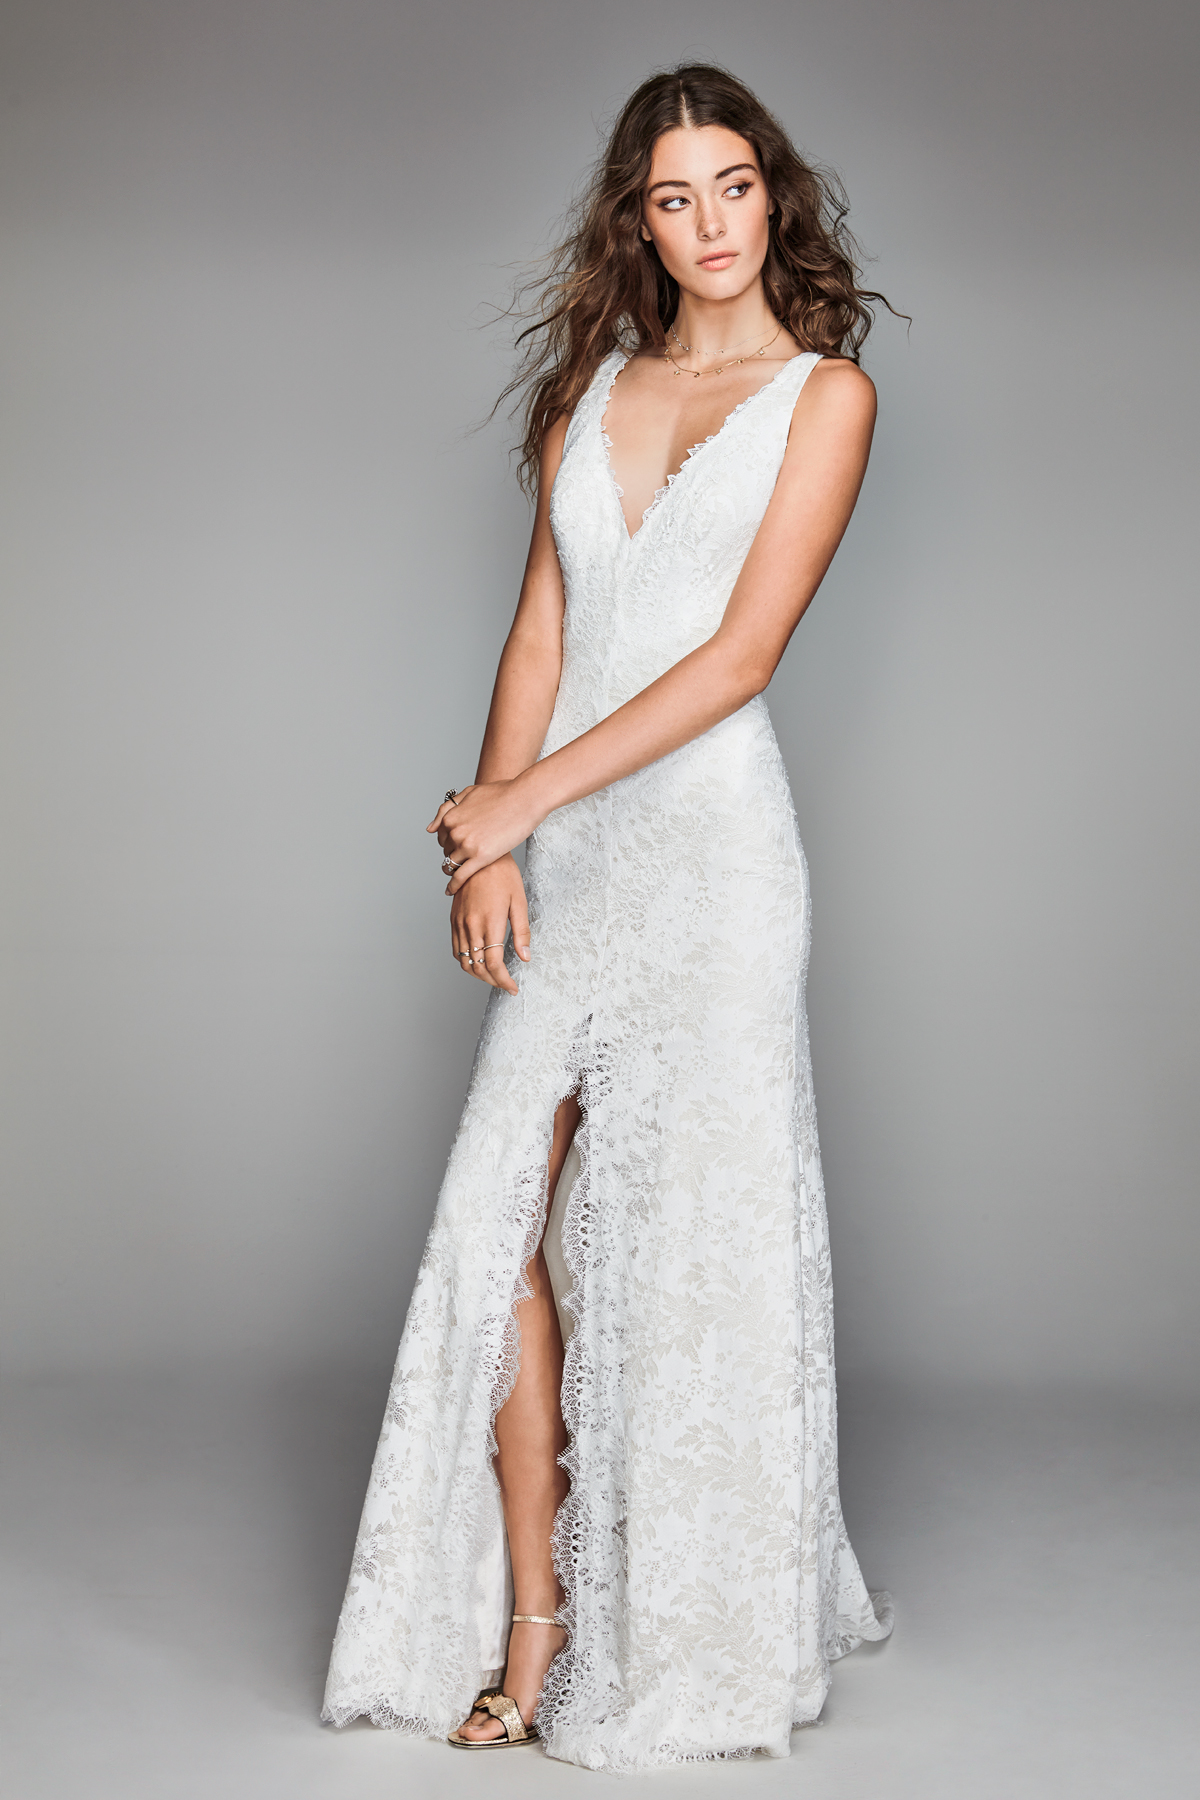 willowby by watters 2018 v-neck lace wedding dress